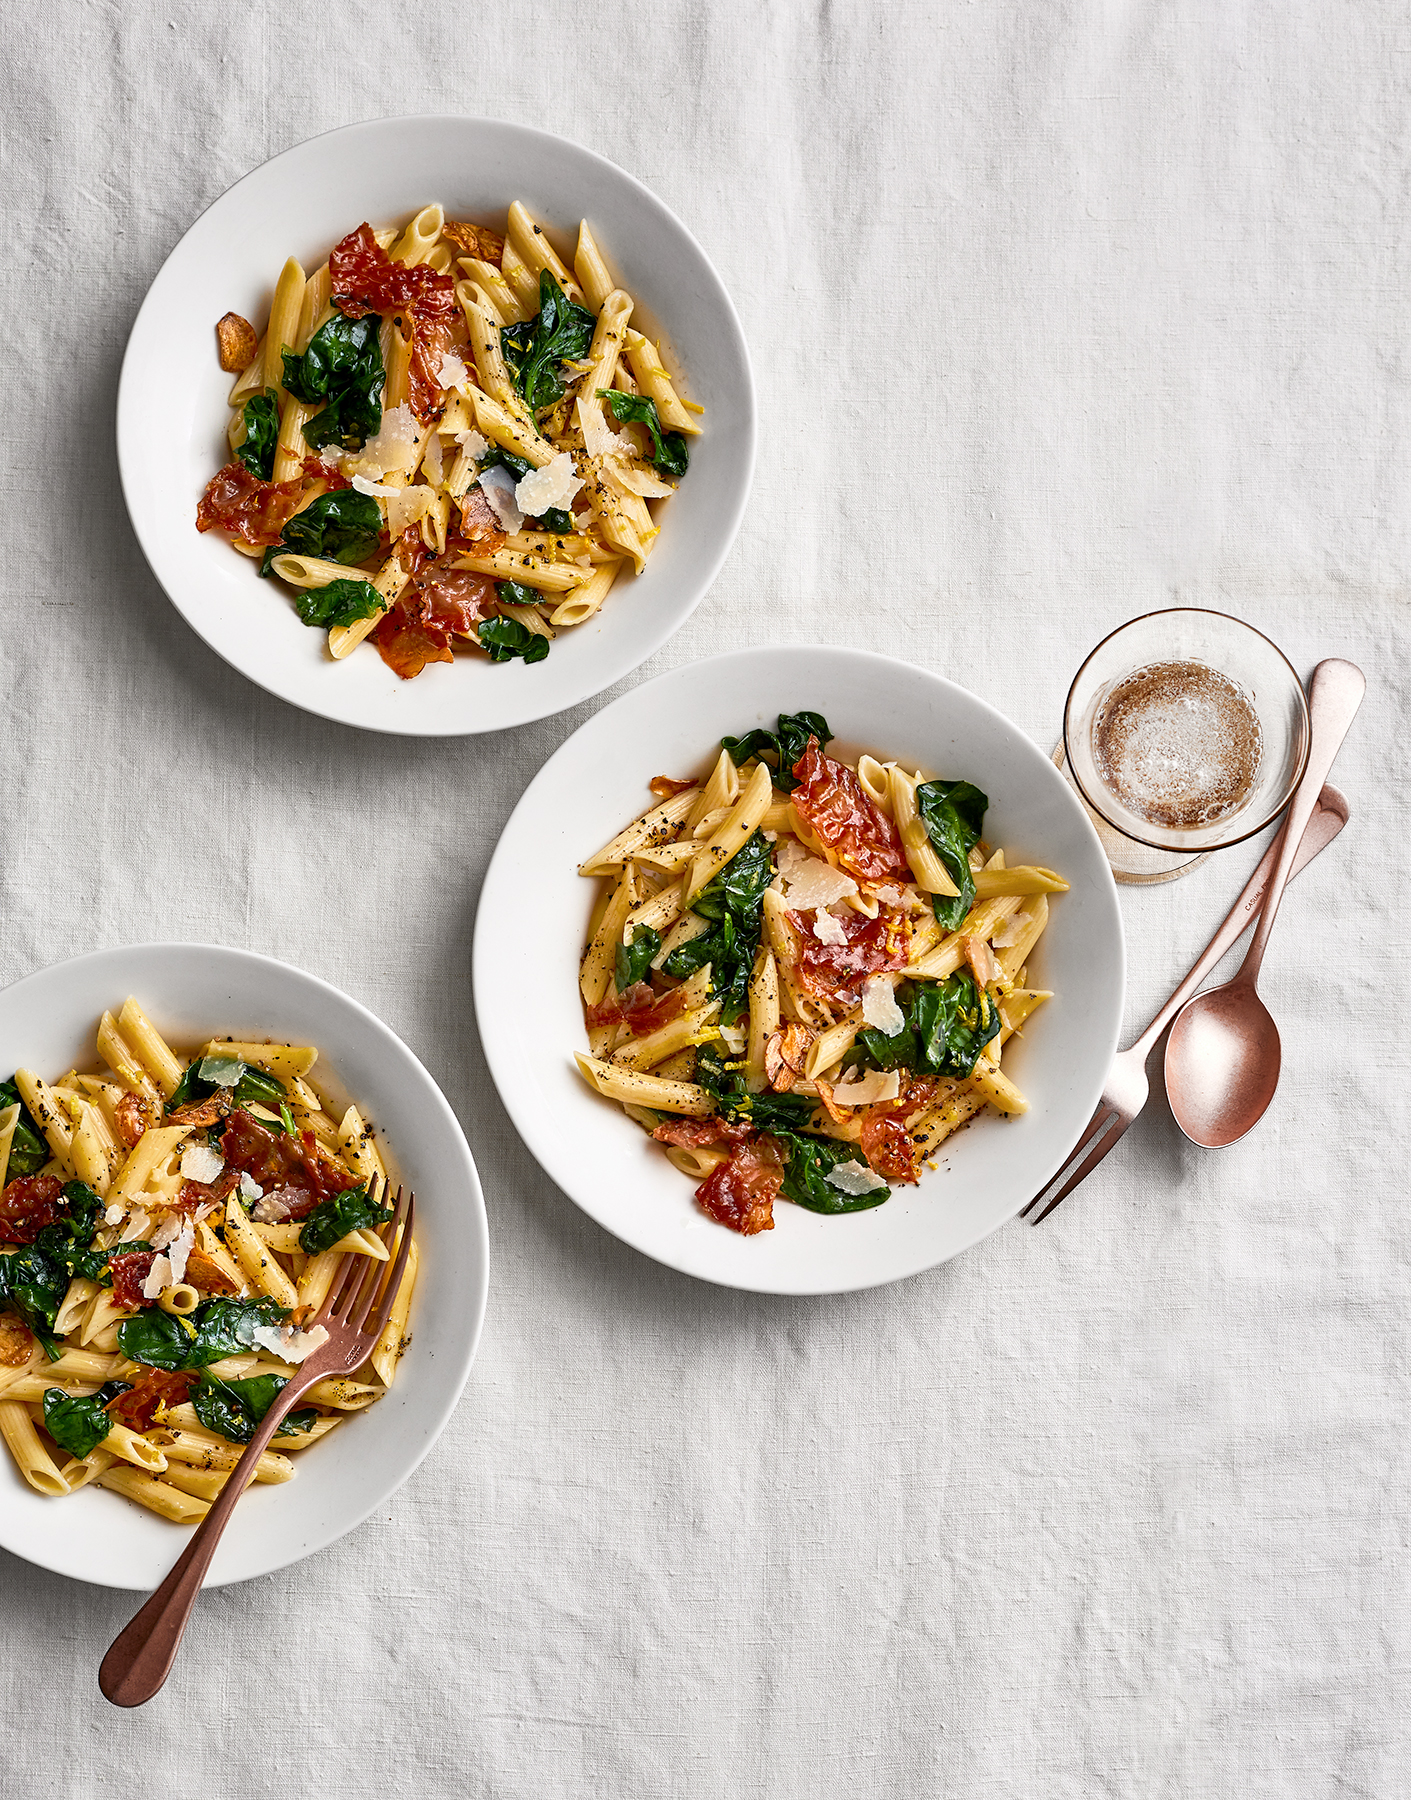 Prosciutto Penne With Spinach